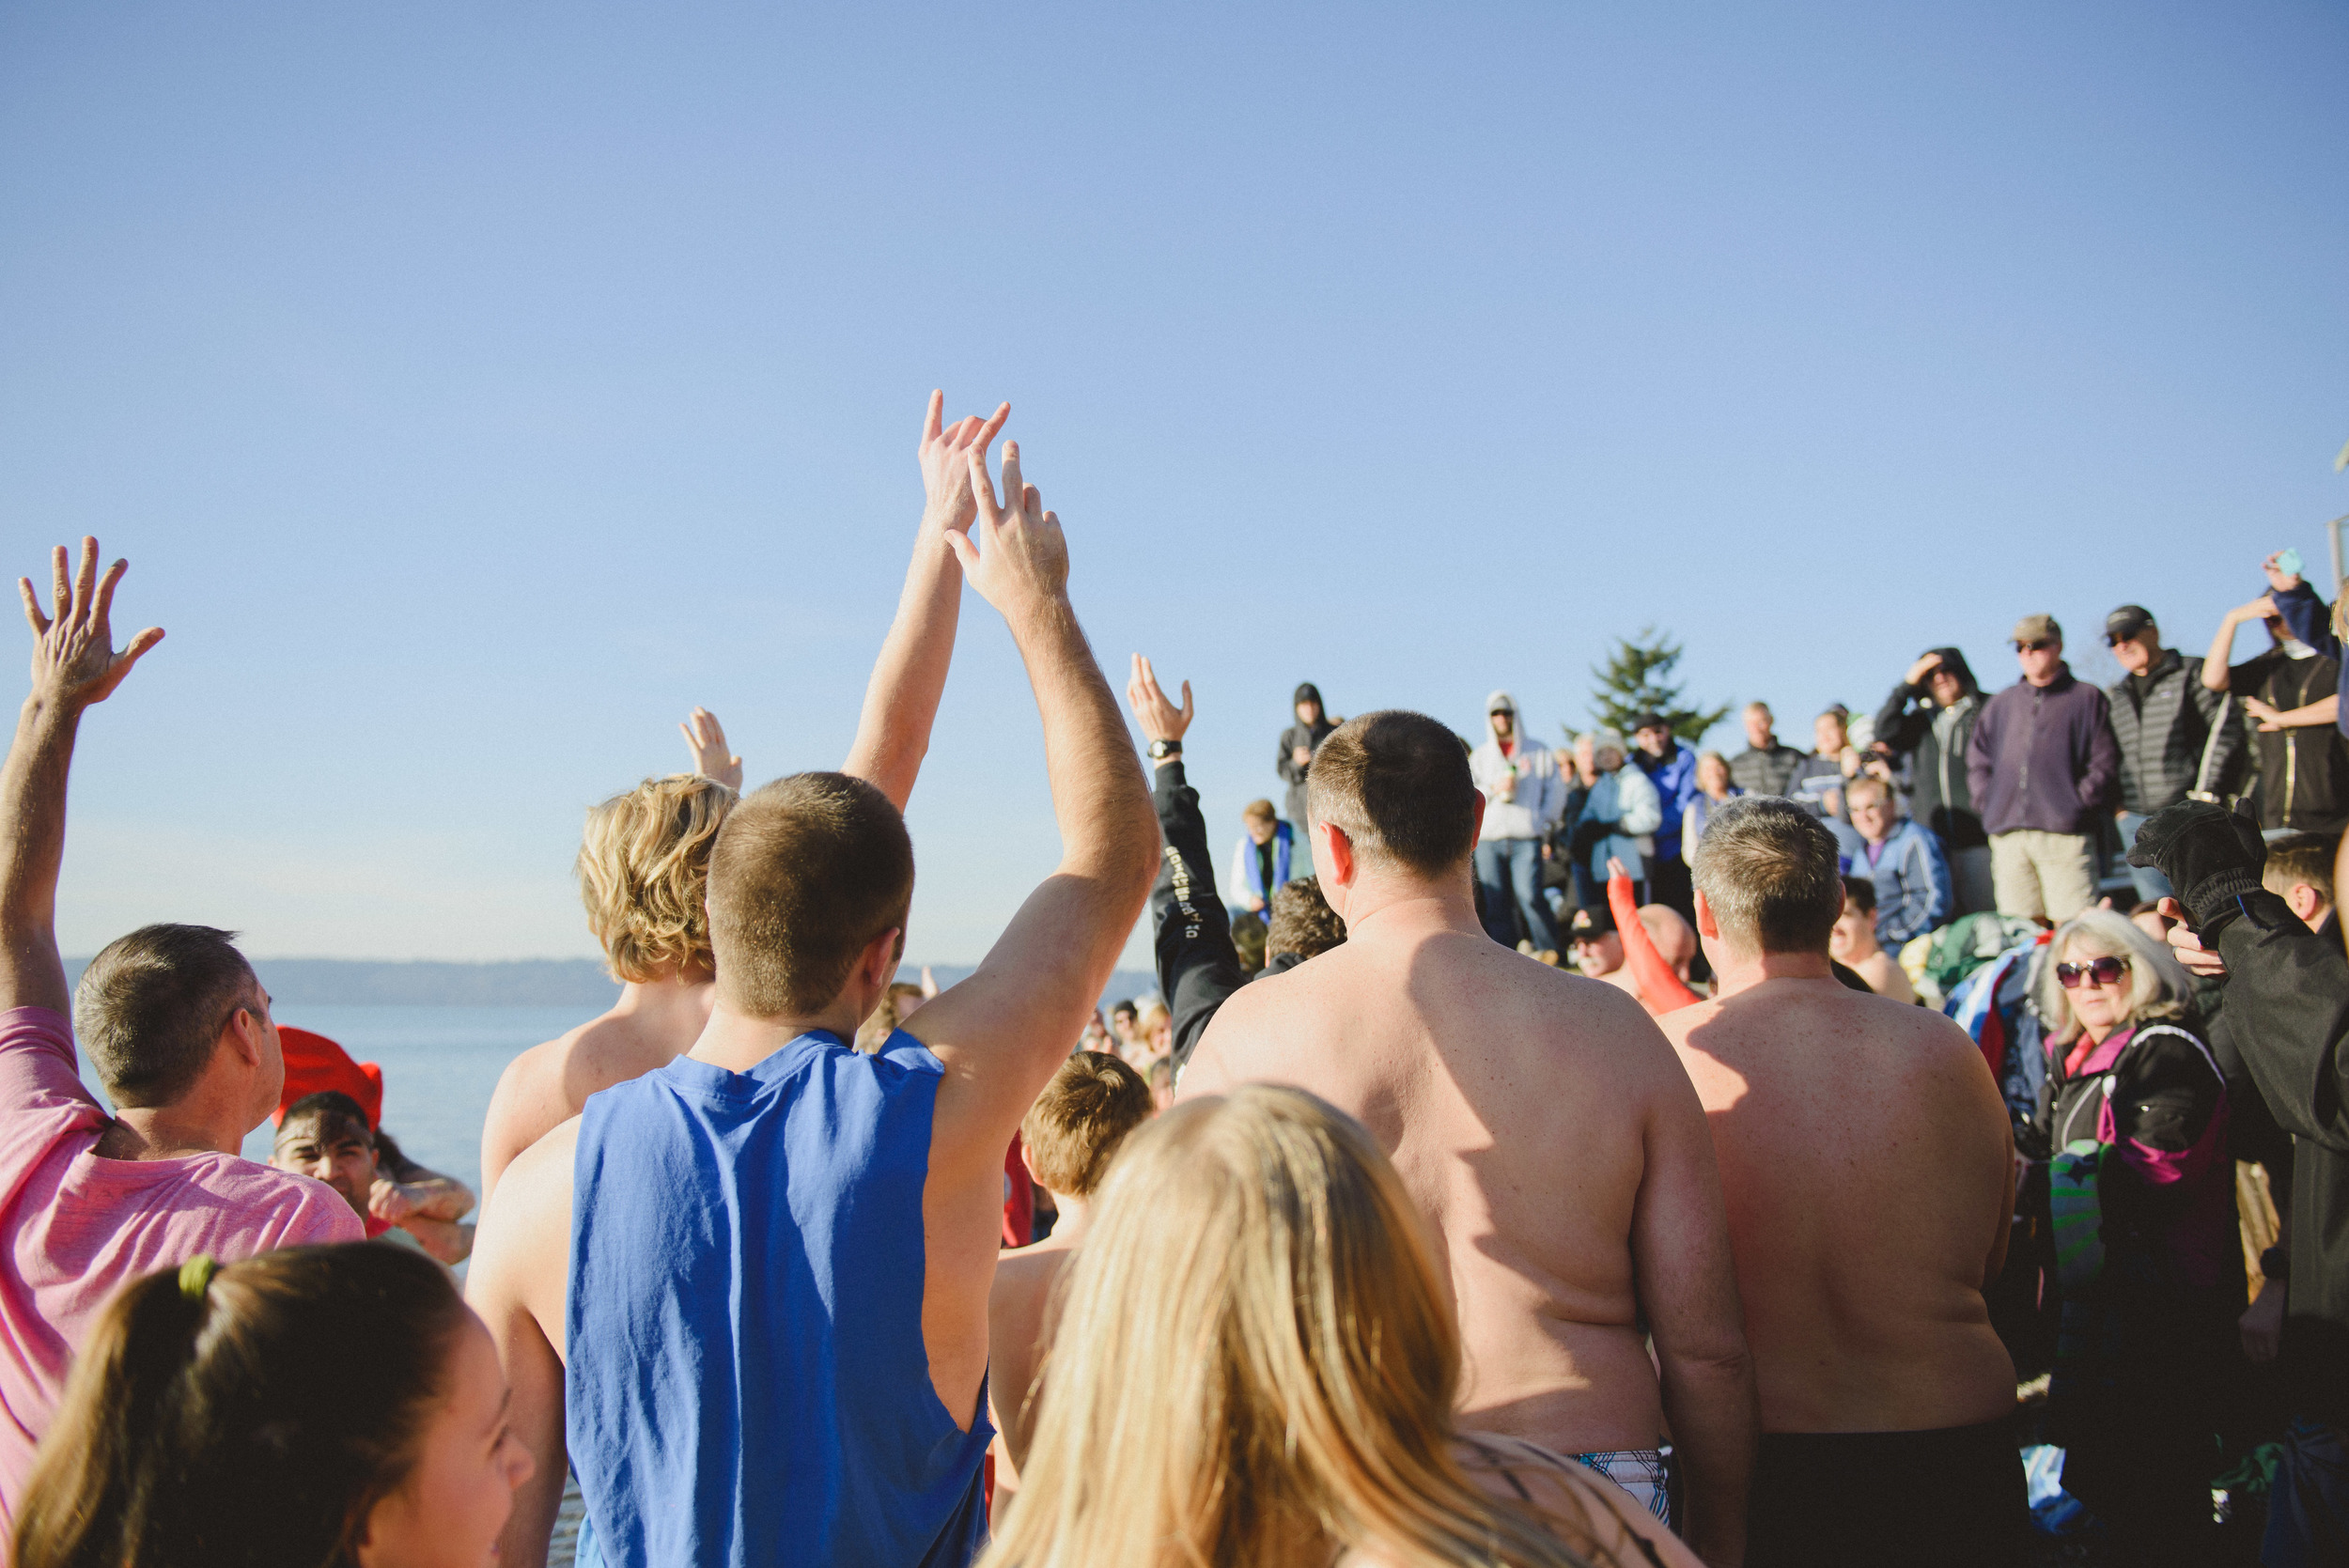 A show of hands for who has participated in past plunges.